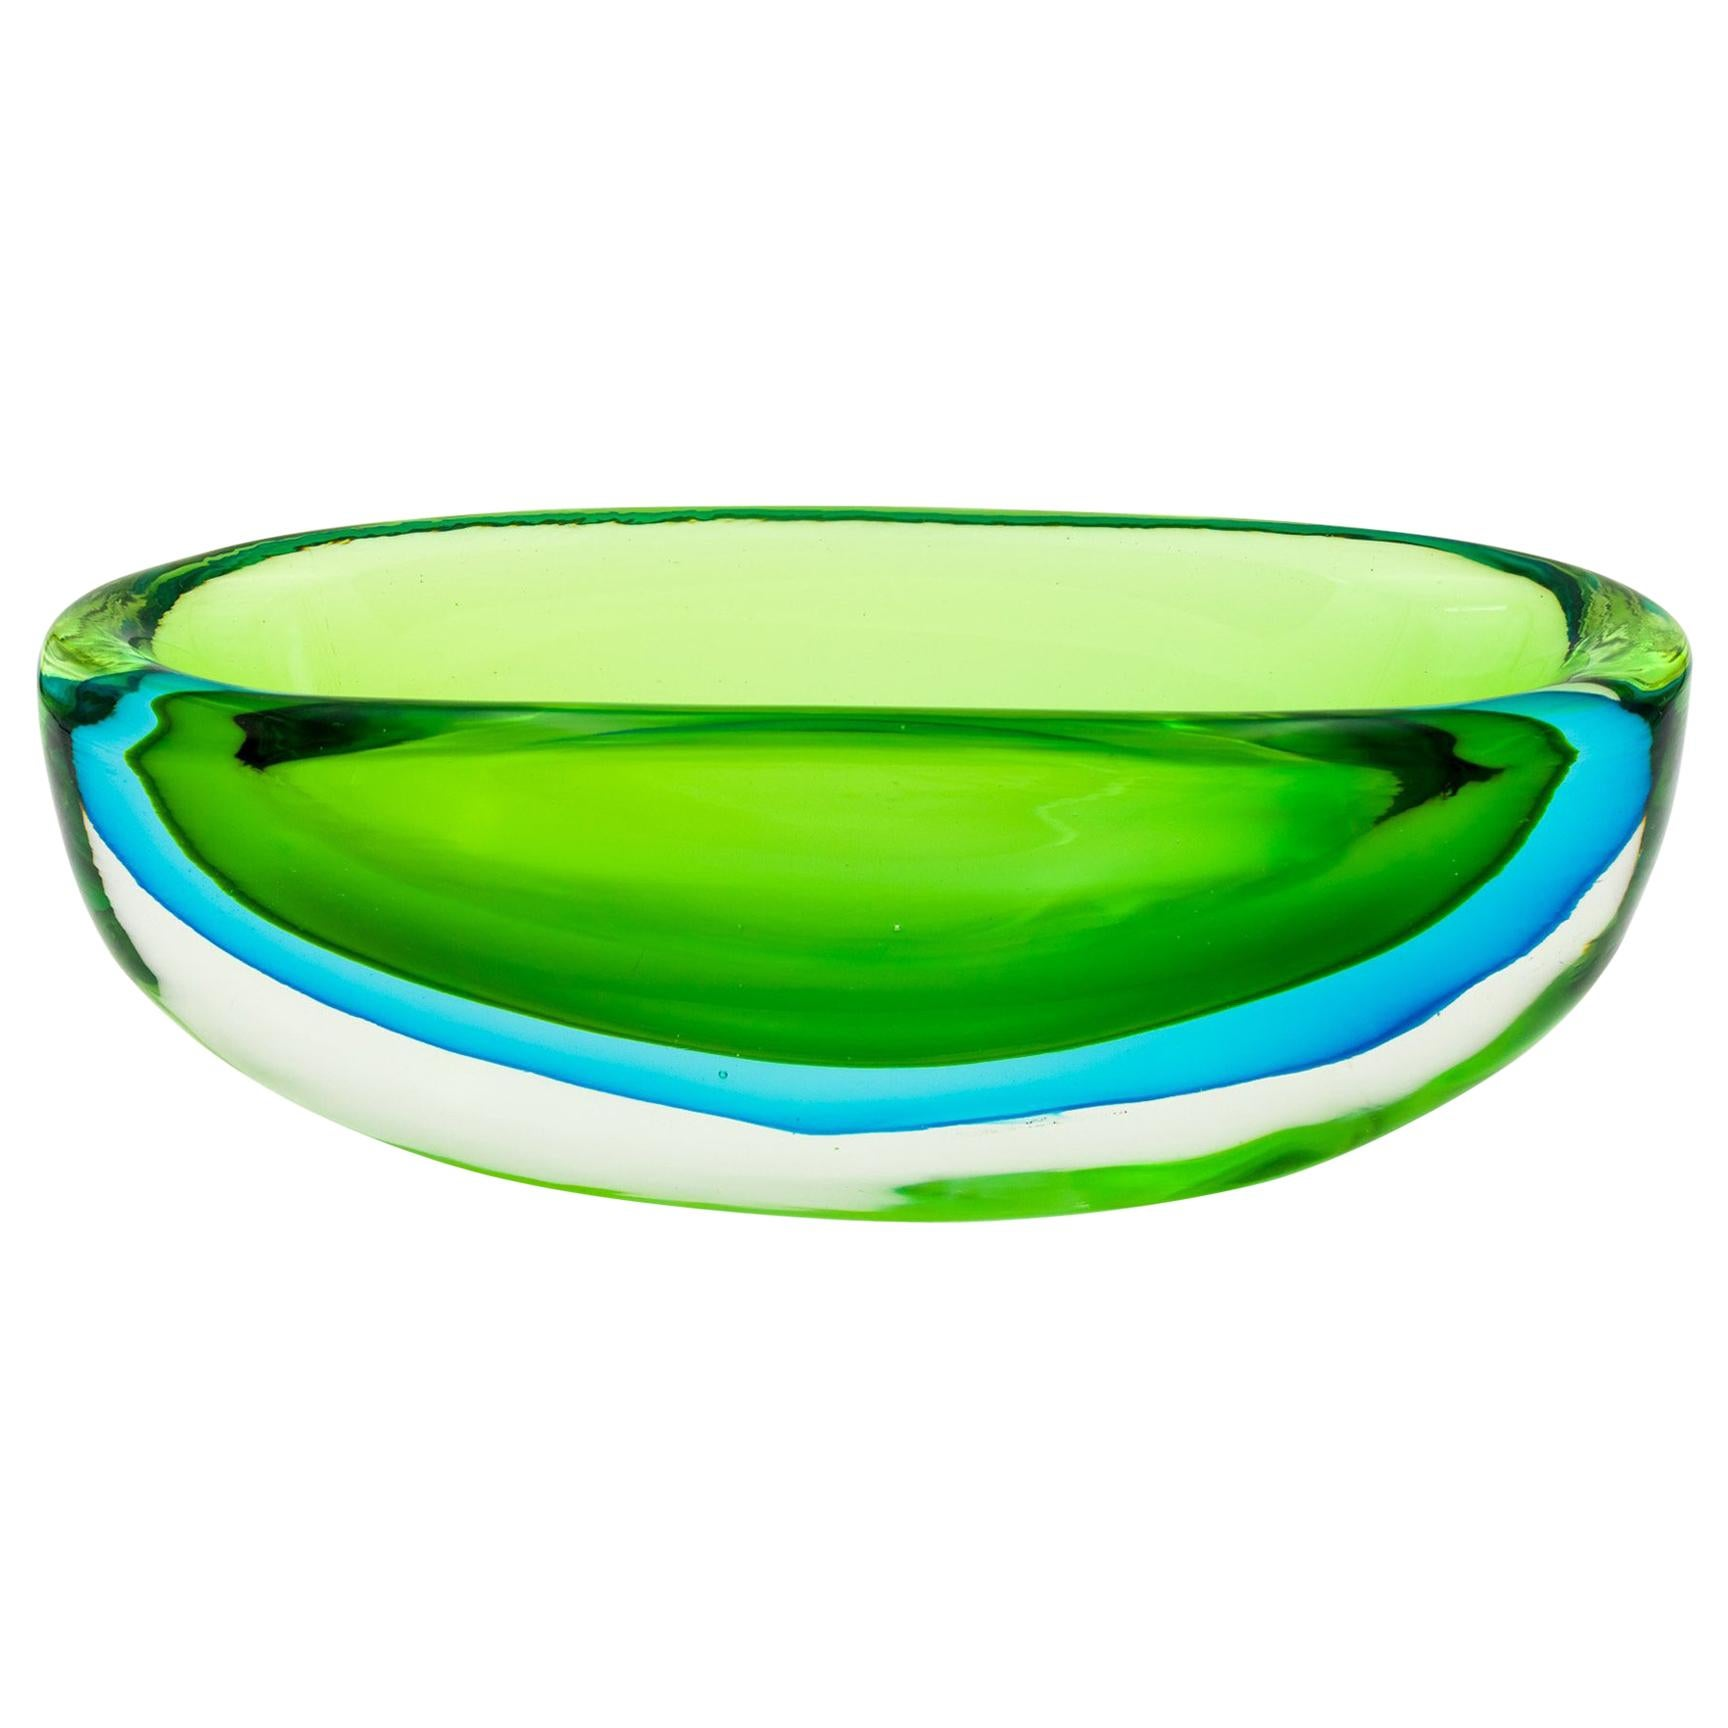 Vintage Flavio Poli for Seguso Vetri d'Arte Large Green and Blue Glass Dish